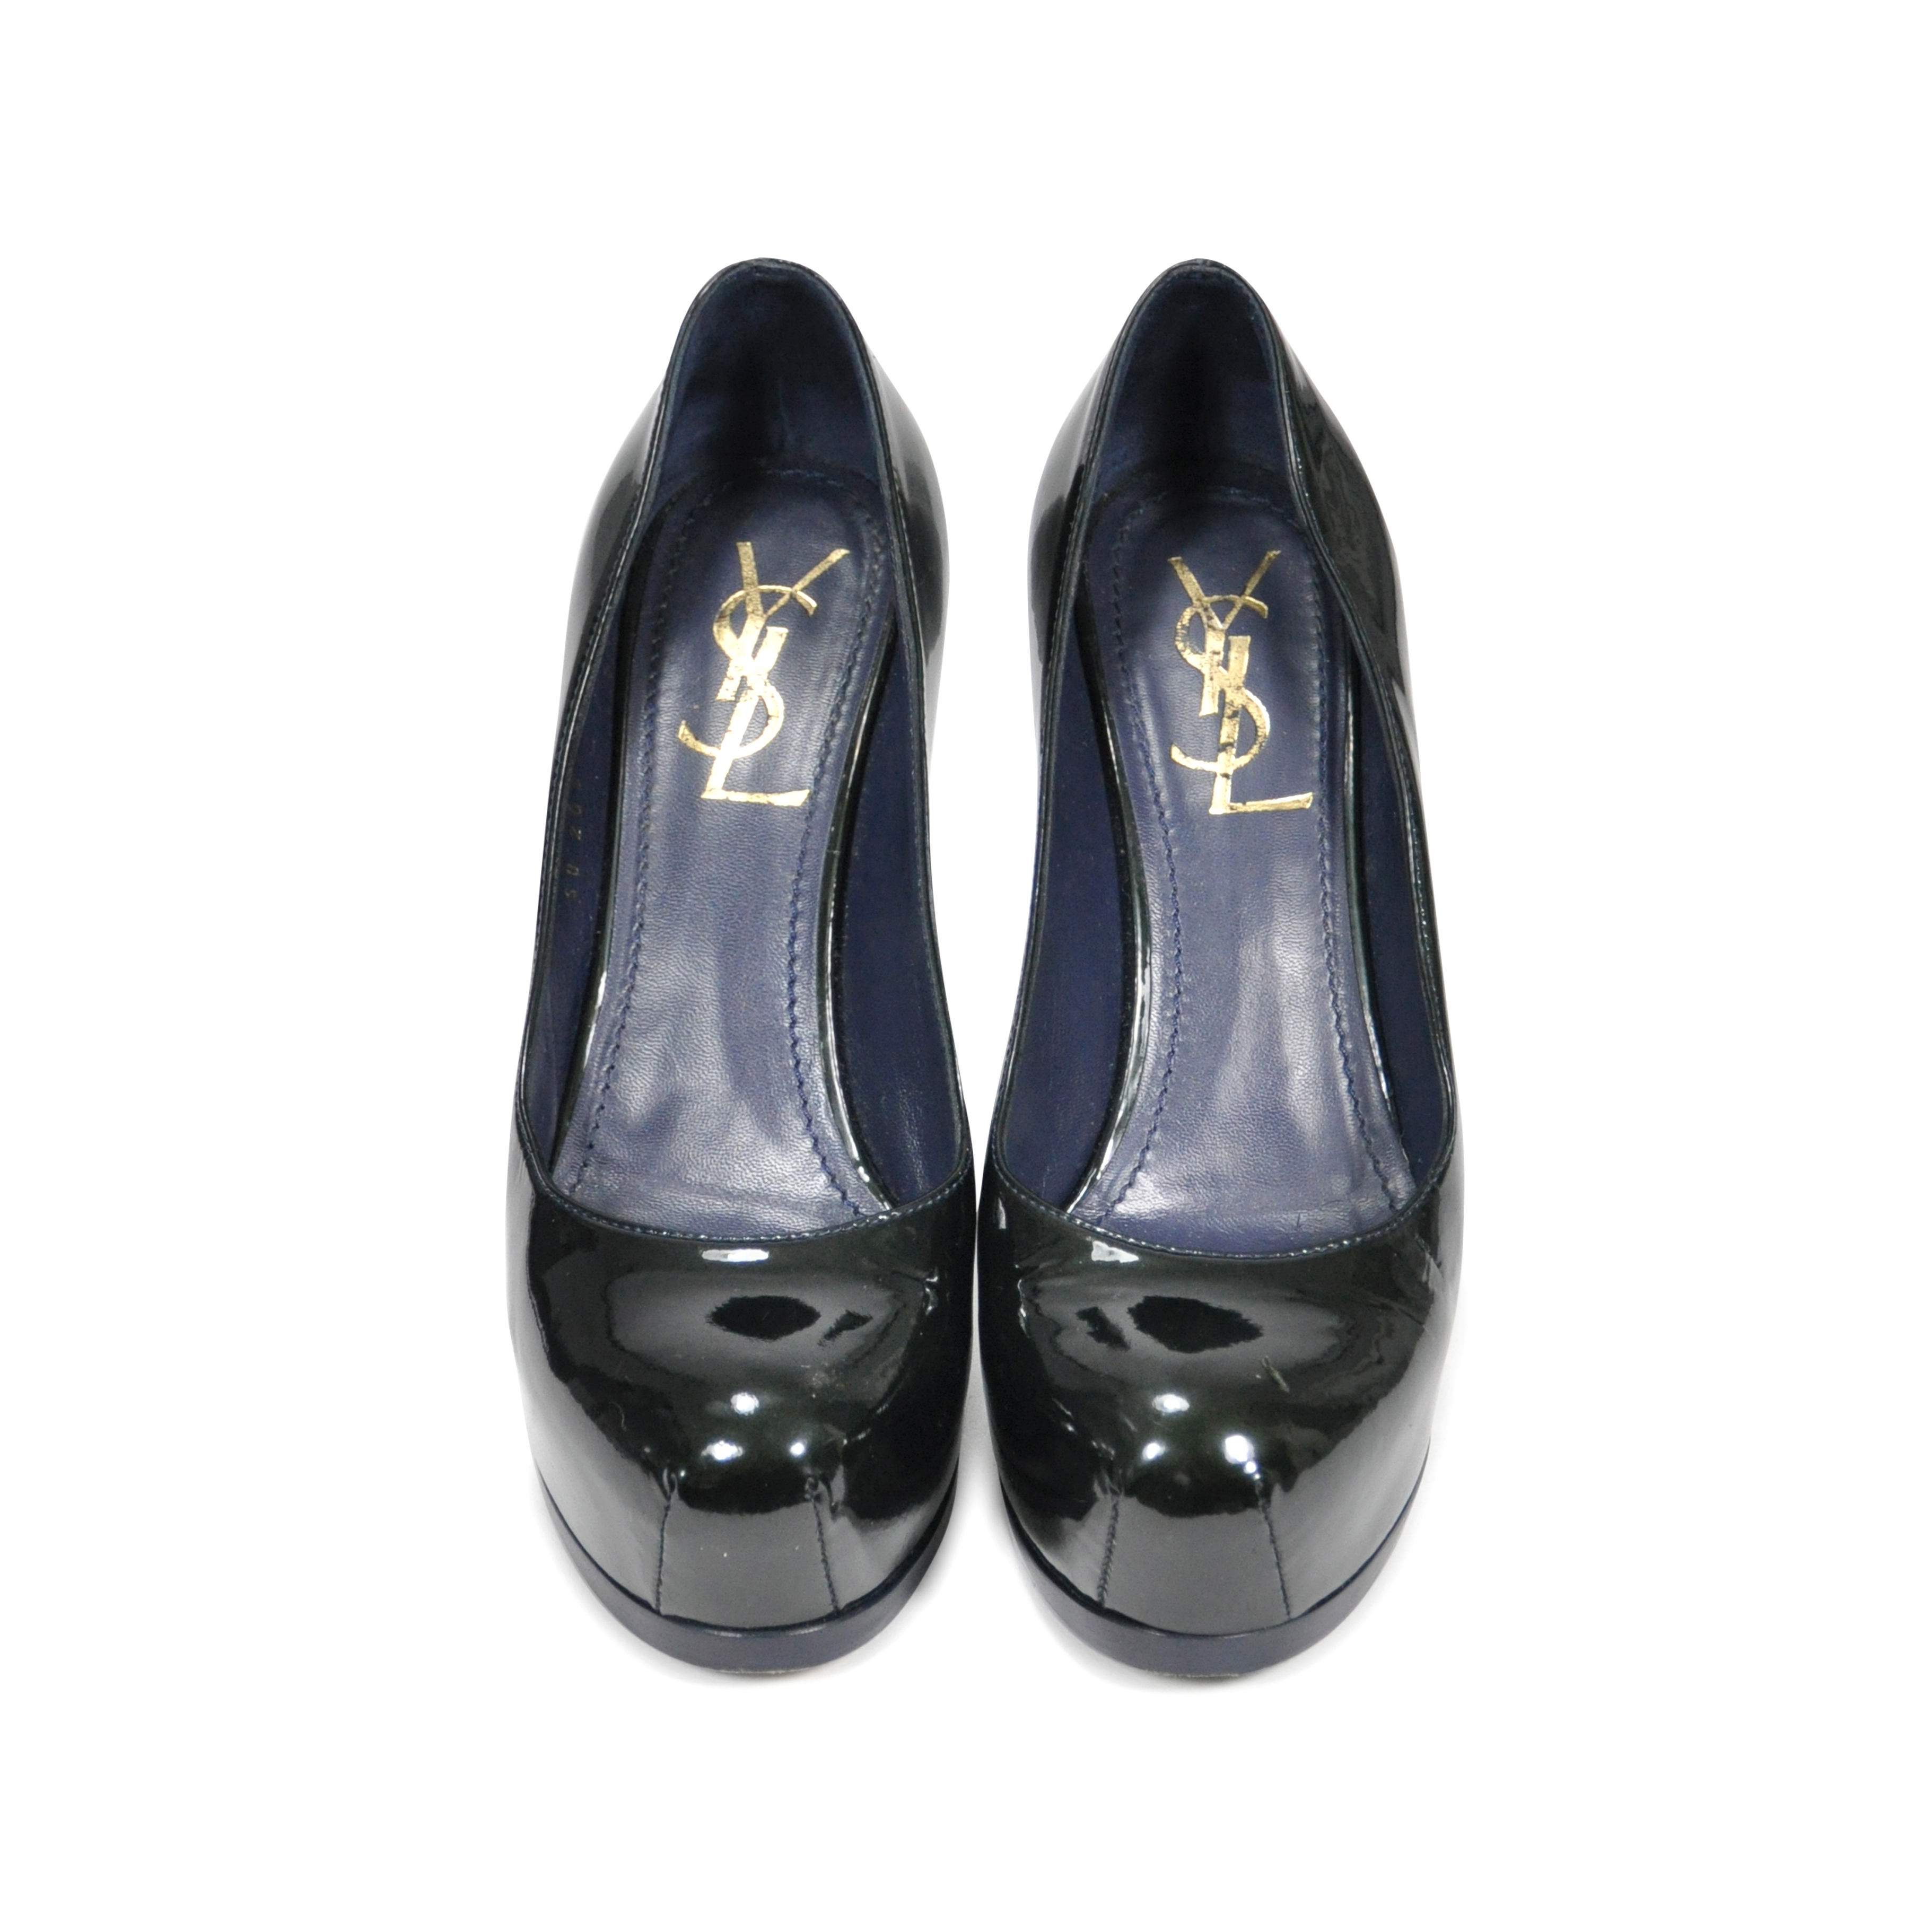 26c13e48bf87 ... wholesale authentic pre owned yves saint laurent tribtoo pumps pss 235  00010 the fifth collection 68a2c